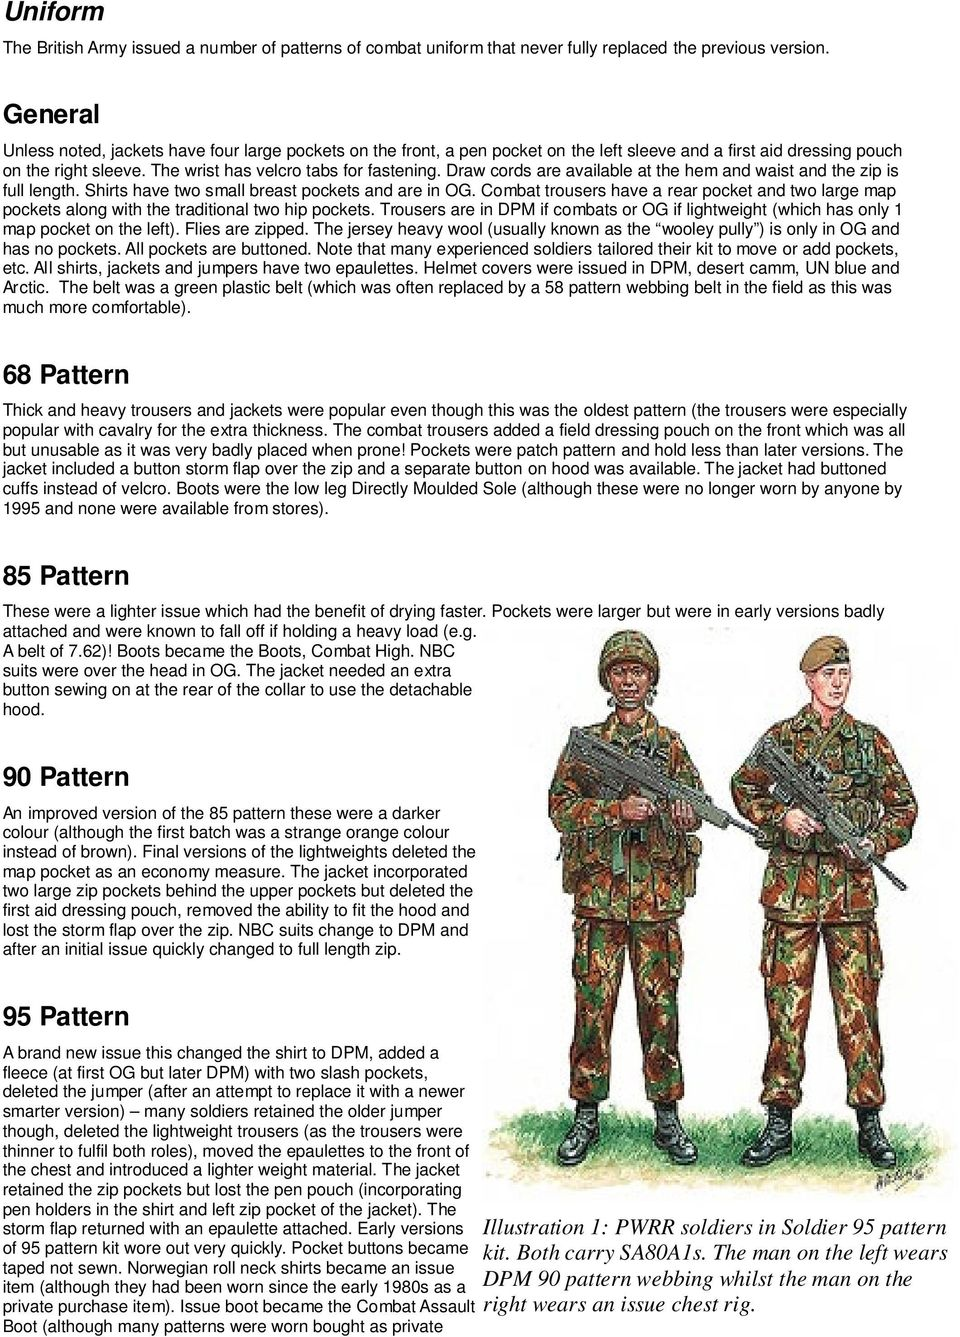 How many times have the epaulettes of the army general changed